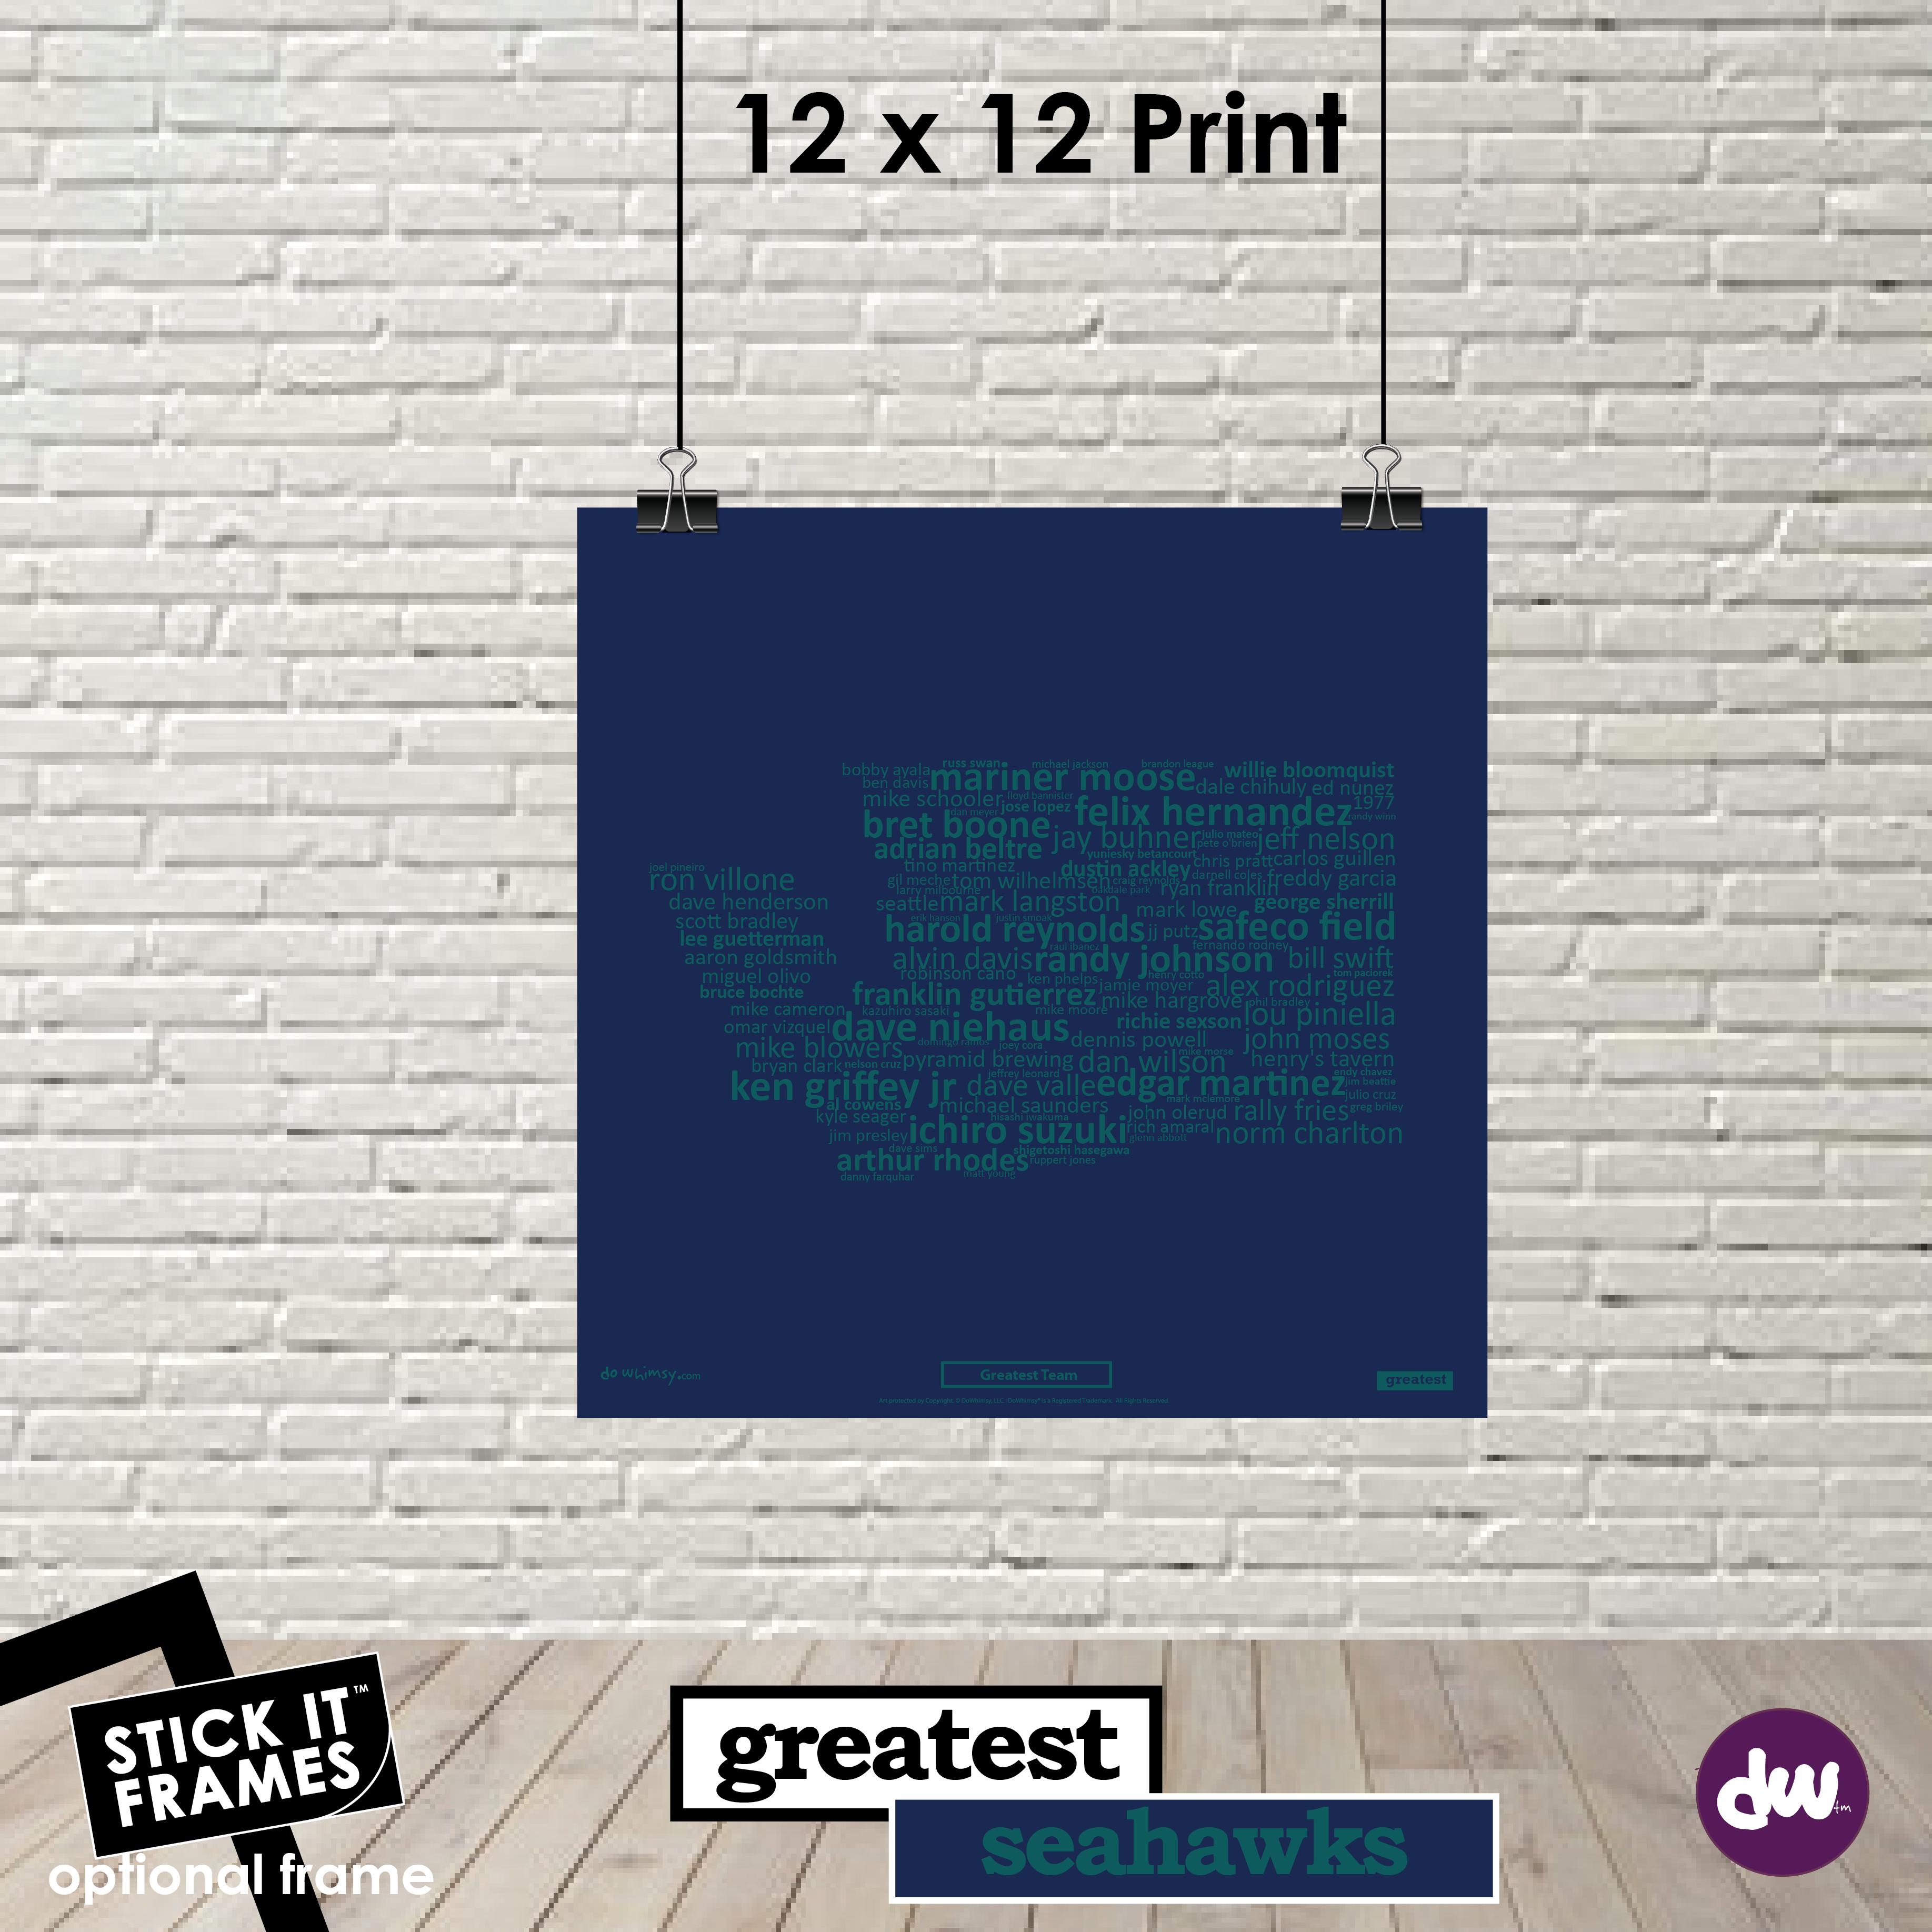 Greatest Washington (Mariners) - All Products (Shirt, Art, Frames (R))